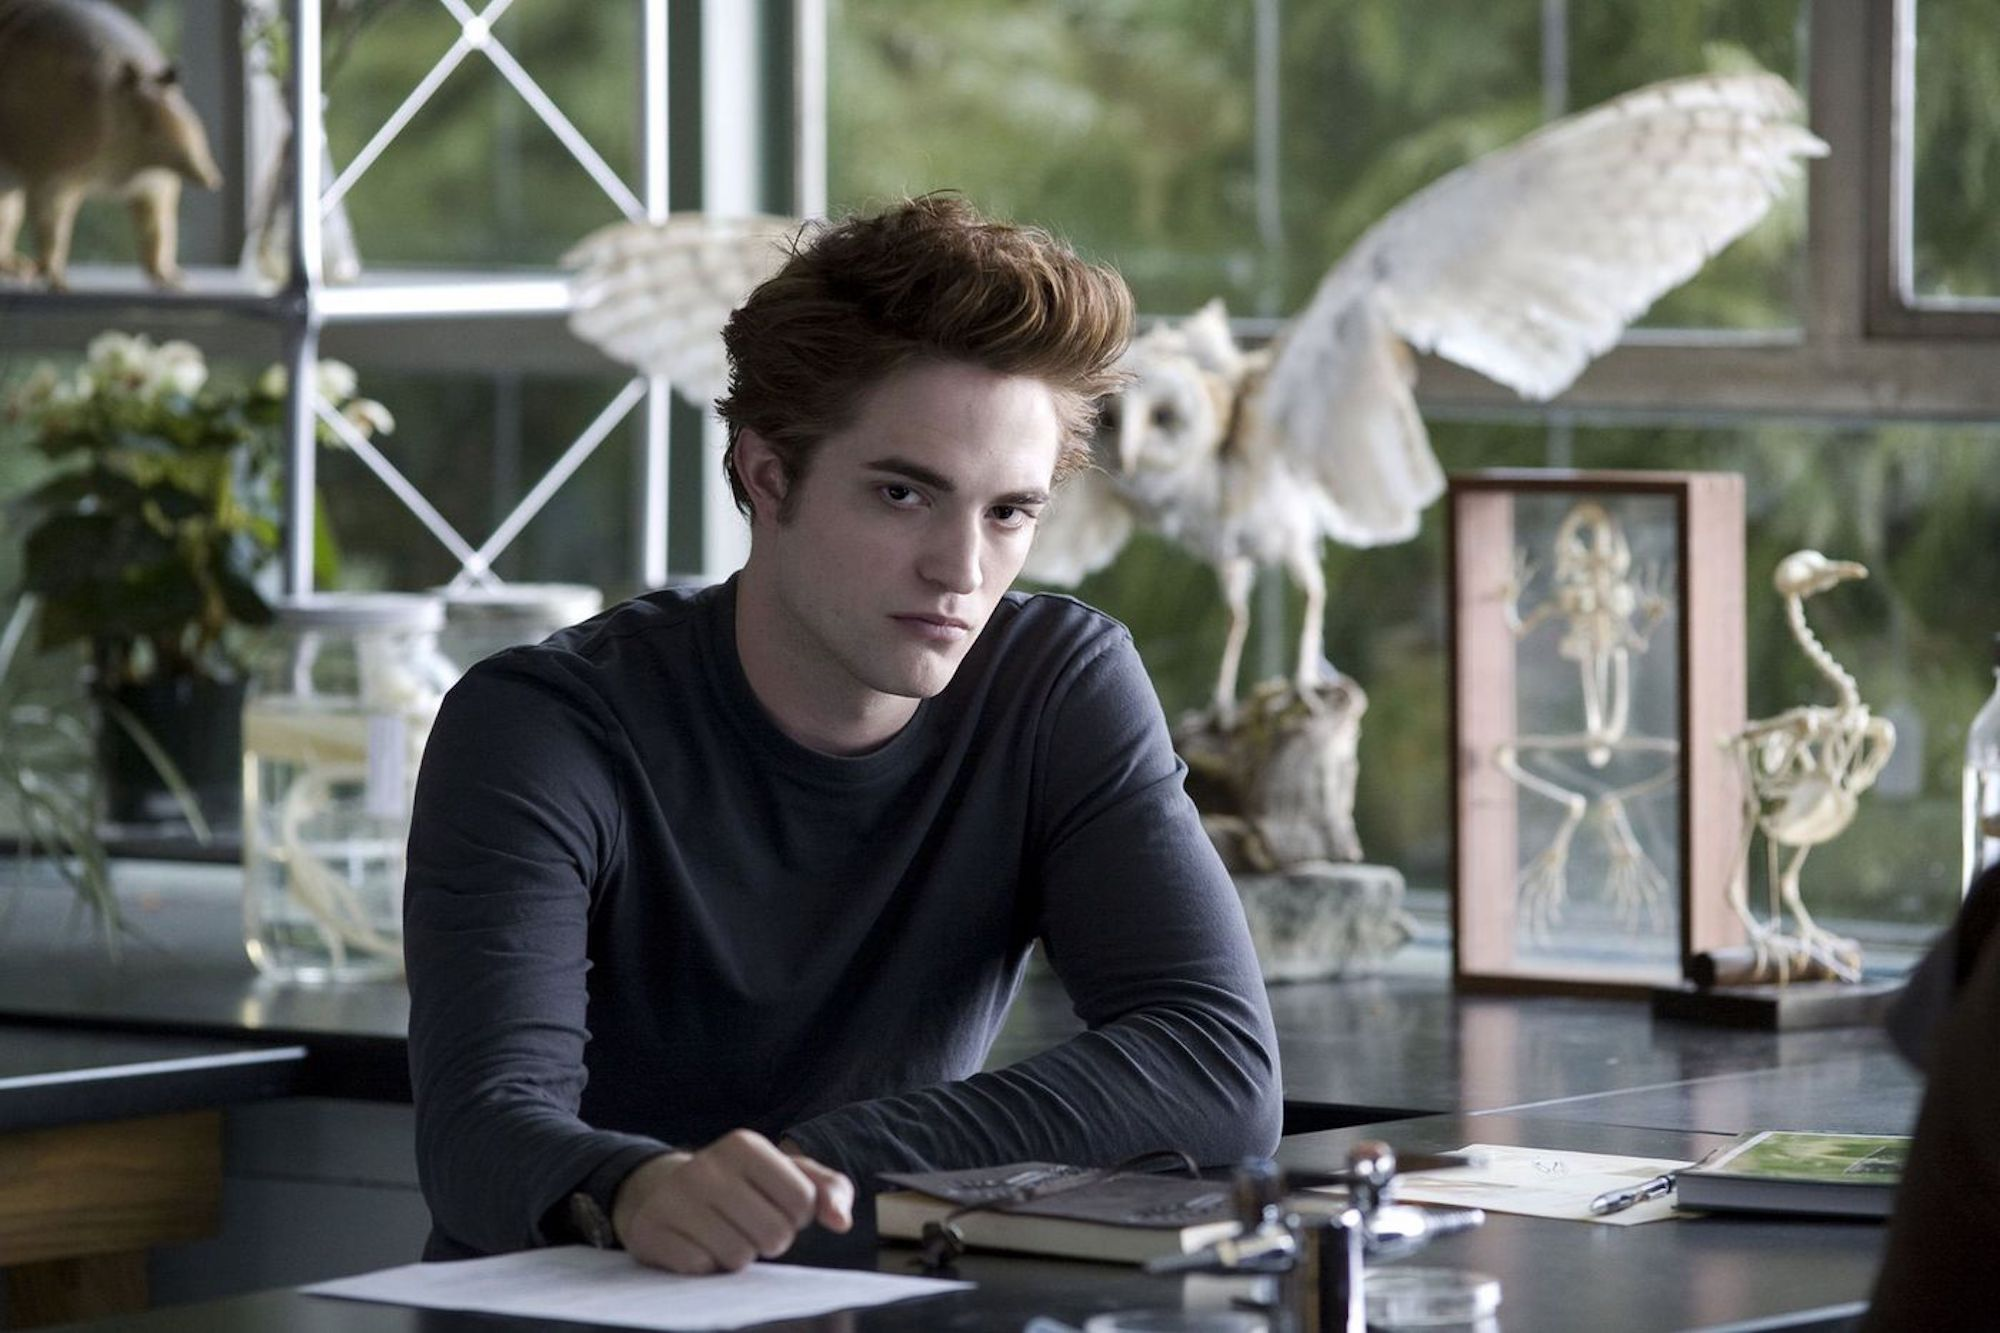 Edward Cullen Isn't the Main Character of 'Twilight' but He Does Have the Most Development Because of 1 Flaw